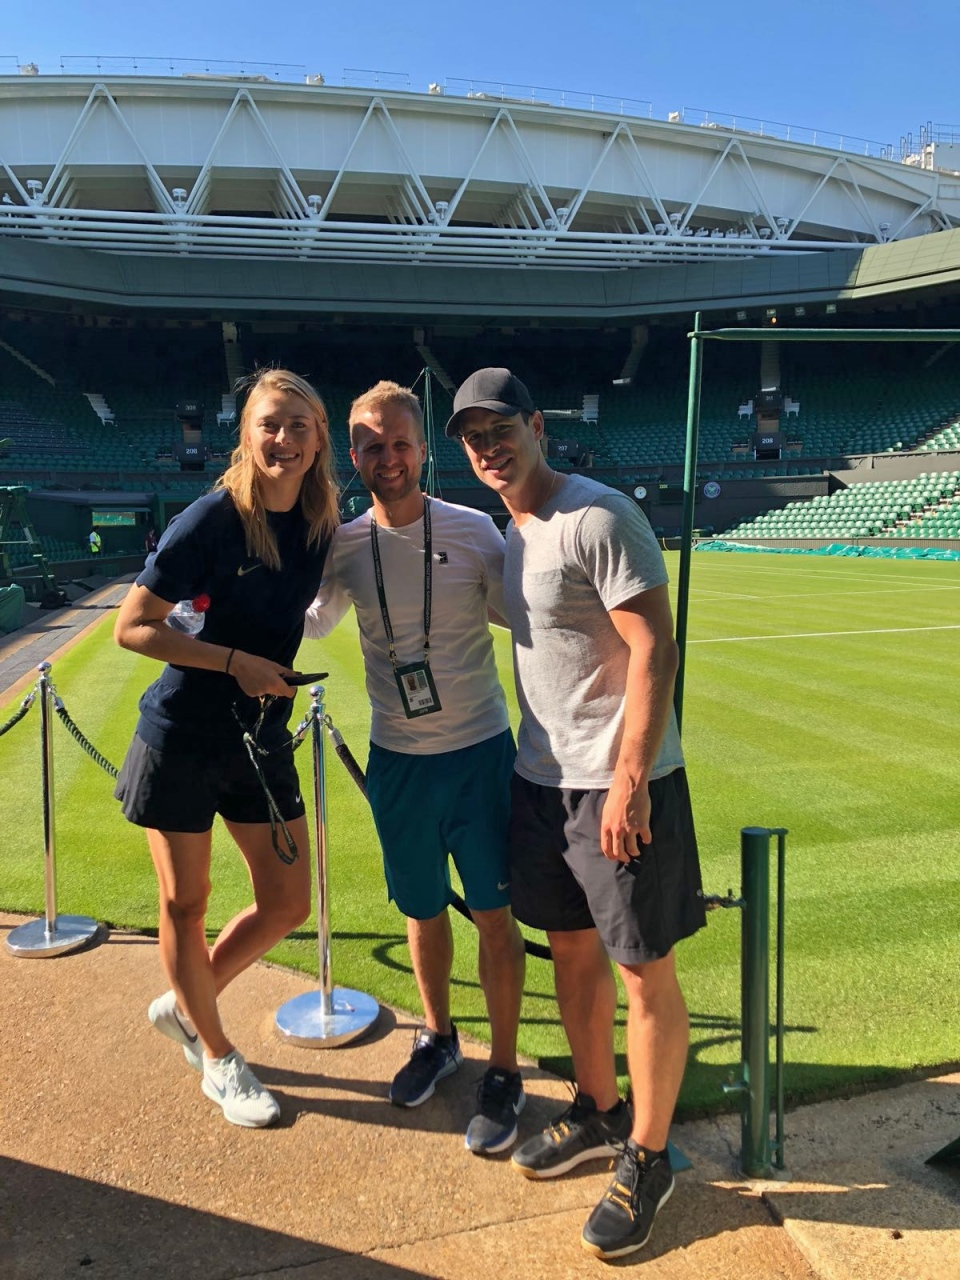 Strength and conditioning coach and massage therapist Marcin Goszczynski, centre, poses for a photo with Maria Sharapova and Sidney Crosby in this undated handout photo. THE CANADIAN PRESS/HO, Marcin Goszczynski